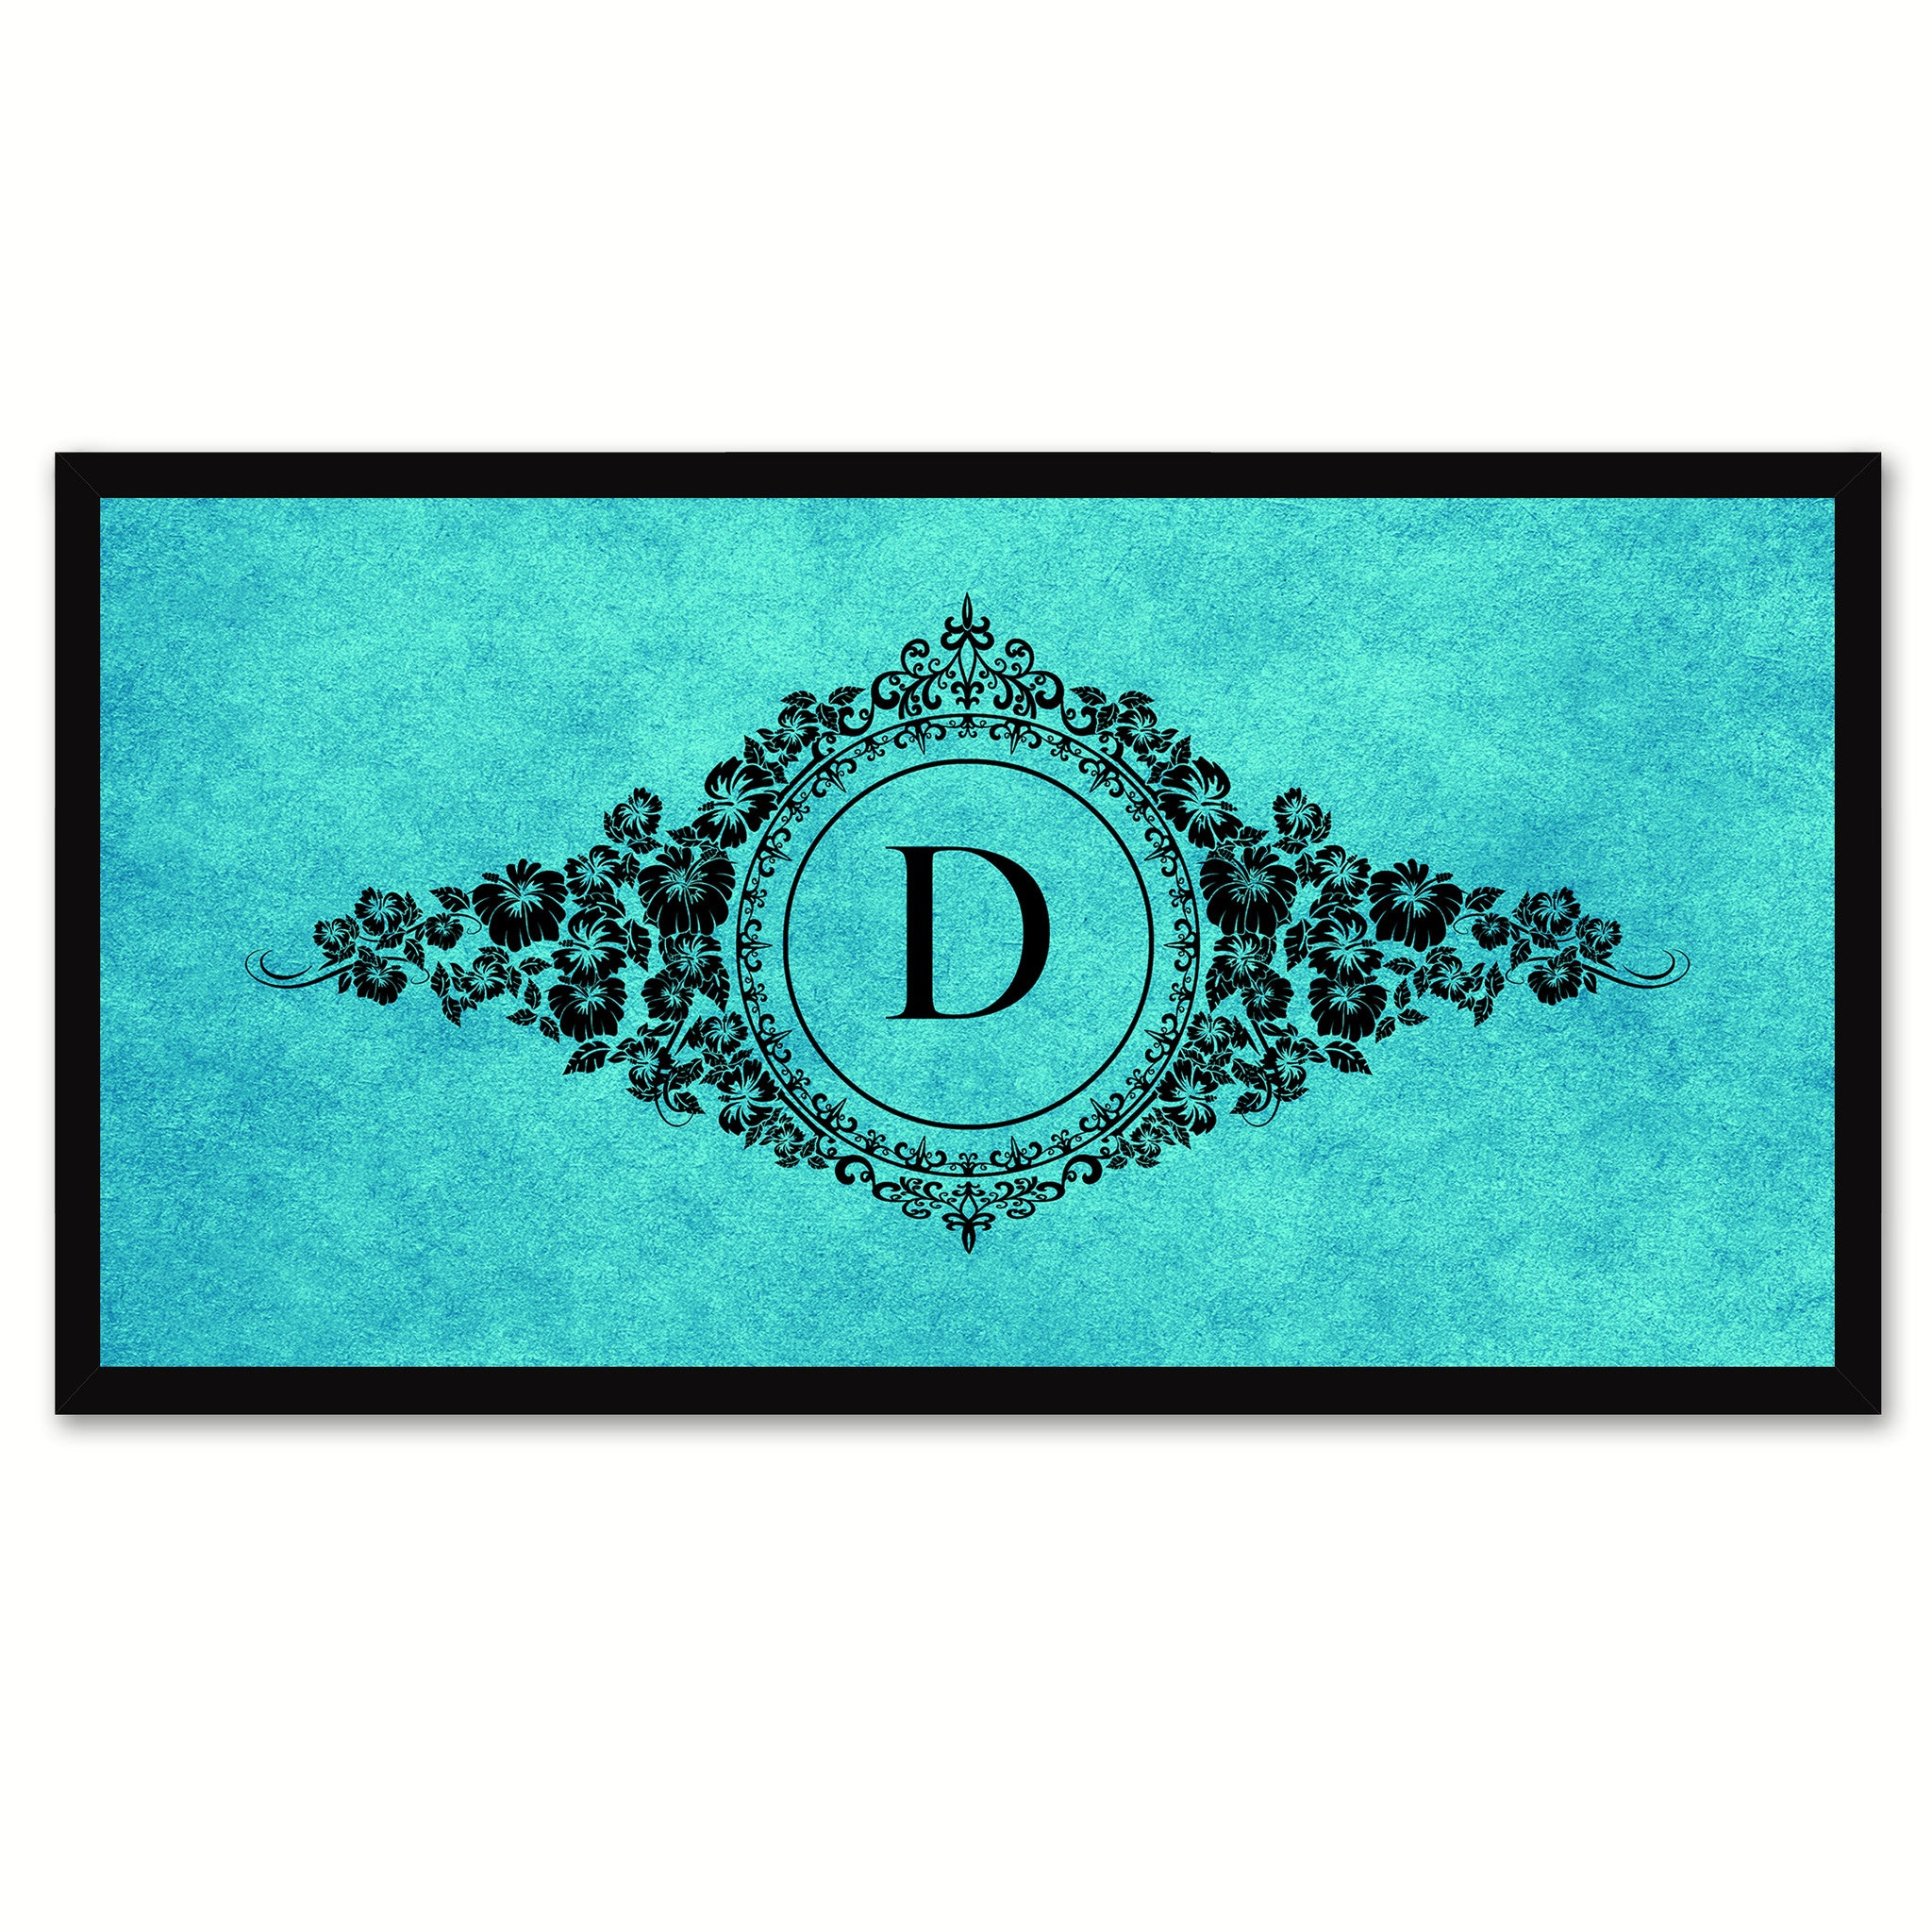 Alphabet Letter D Auqa Canvas Print, Black Custom Frame